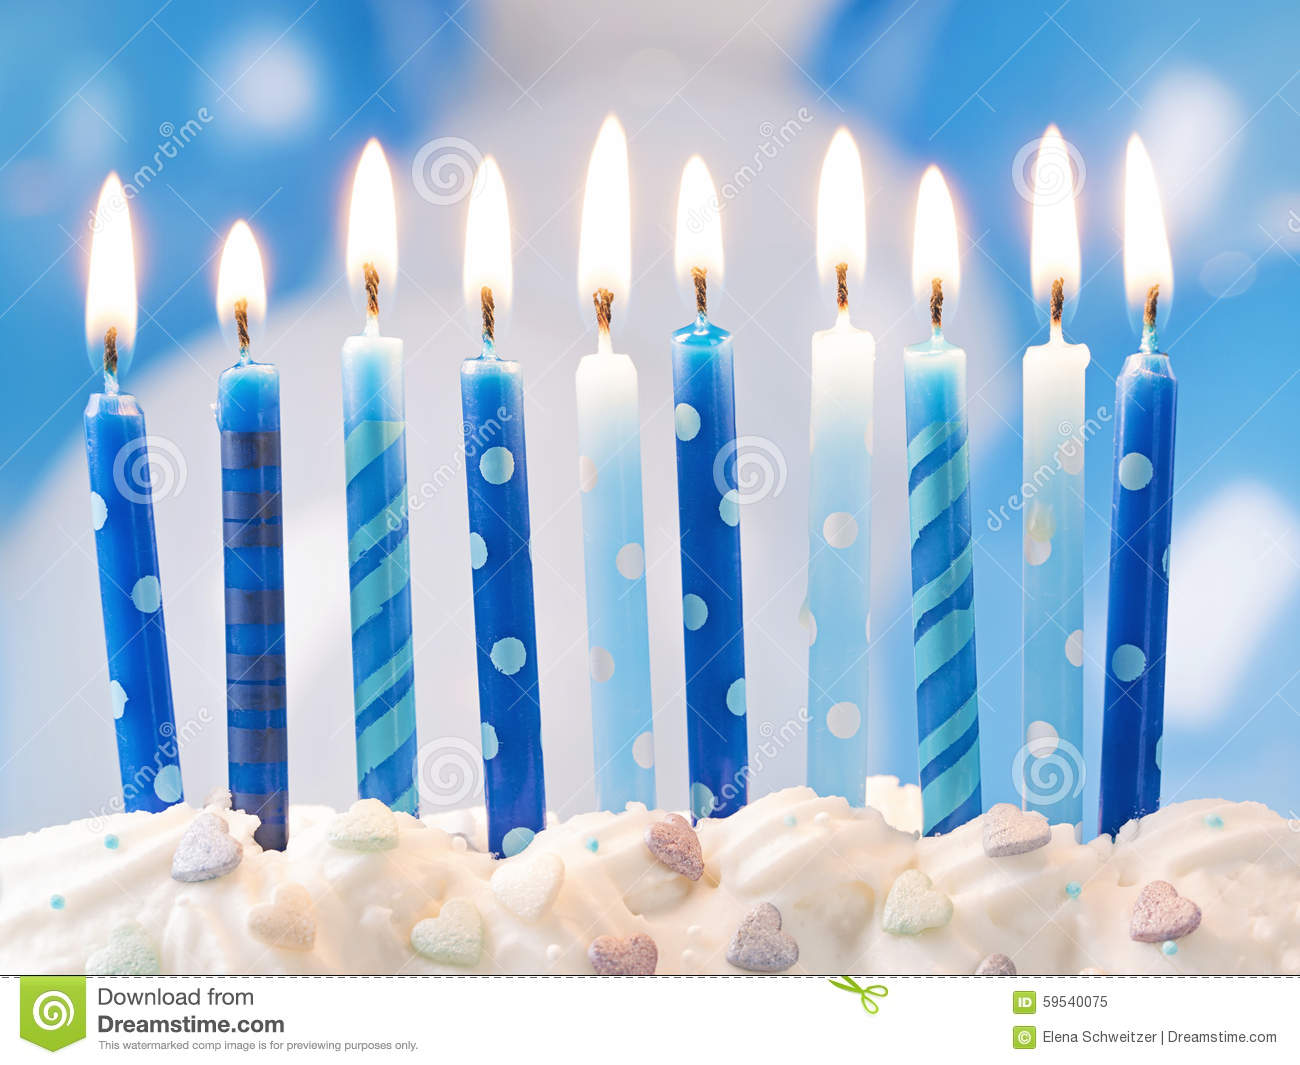 Blue Birthday Candles Stock Photo - Image: 59540075